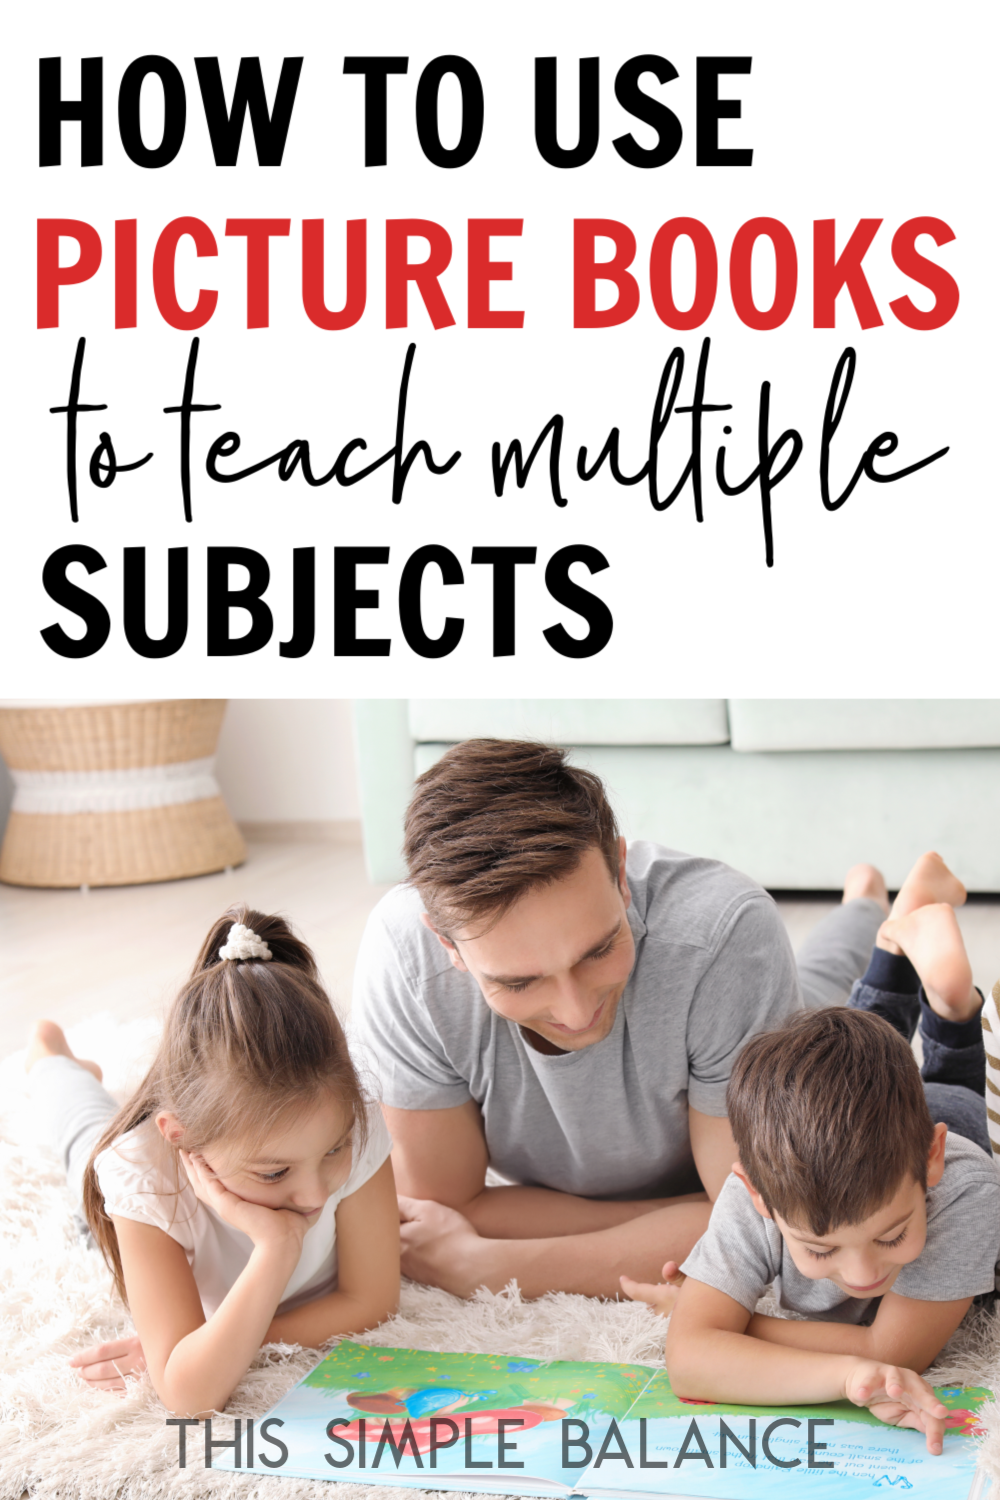 Homeschool Tips: How to Teach Multiple Subjects with just one Picture Book